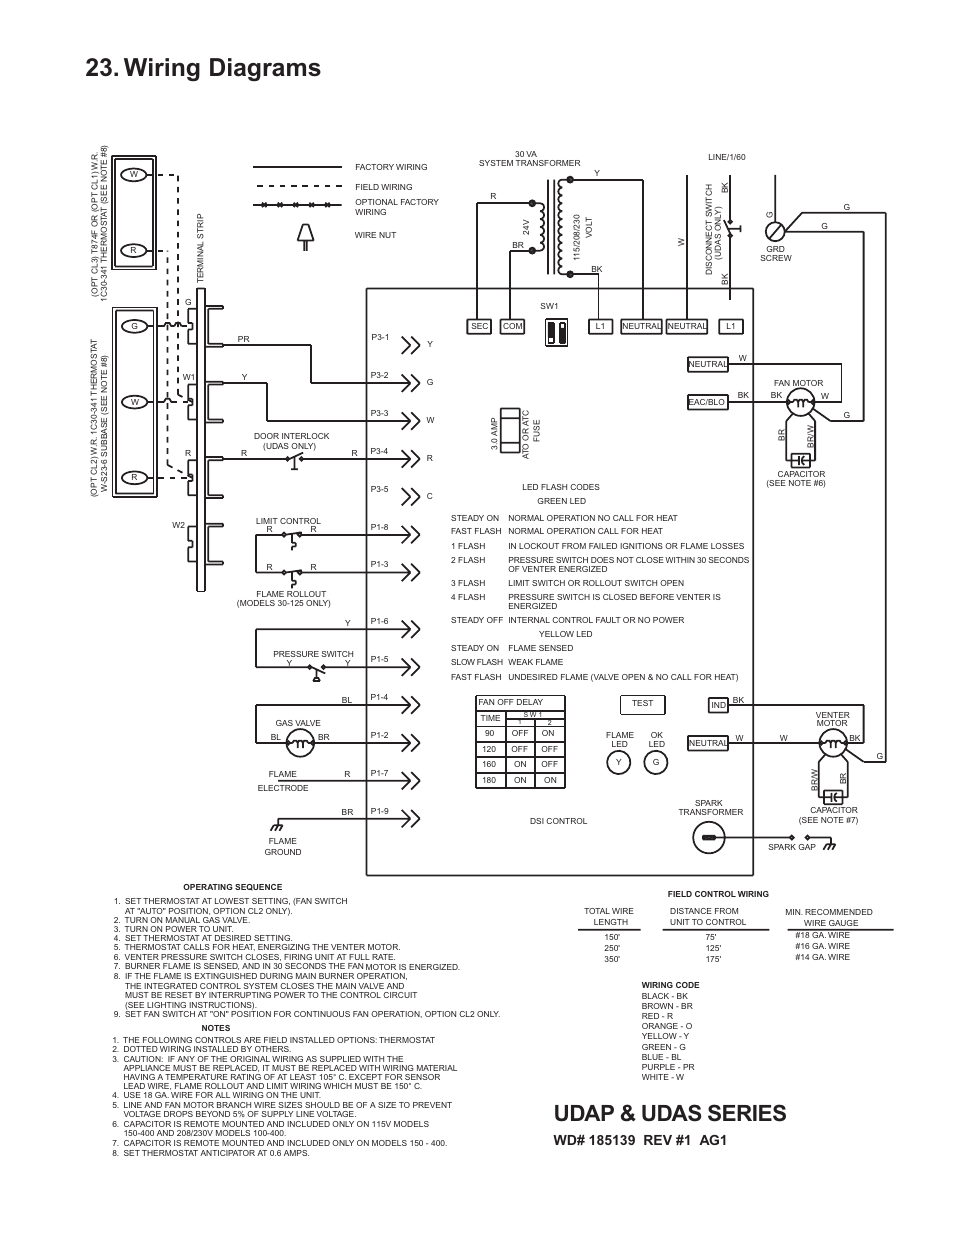 Wiring diagrams, Udap & udas series | Thomas & Betts UDAP User ... on hvac diagrams, troubleshooting diagrams, sincgars radio configurations diagrams, friendship bracelet diagrams, internet of things diagrams, electrical diagrams, smart car diagrams, engine diagrams, electronic circuit diagrams, led circuit diagrams, snatch block diagrams, transformer diagrams, motor diagrams, pinout diagrams, switch diagrams, battery diagrams, honda motorcycle repair diagrams, series and parallel circuits diagrams, lighting diagrams, gmc fuse box diagrams,